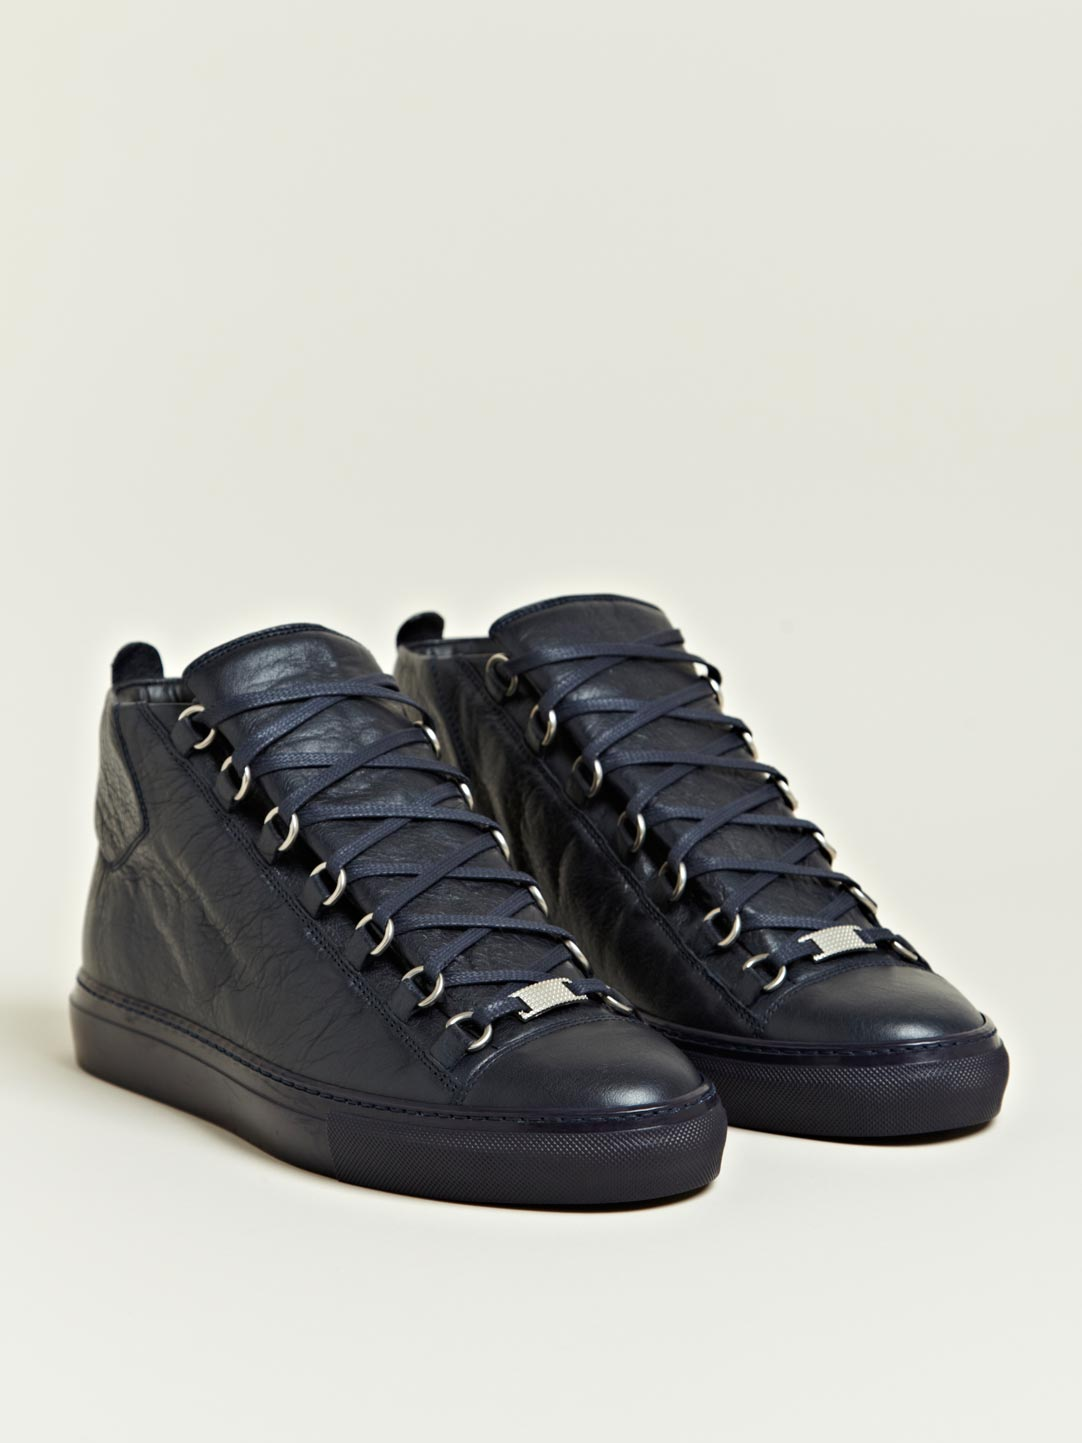 Shop men's sneakers & athletic shoes at Saks Fifth Avenue. Enjoy free shipping on all orders.